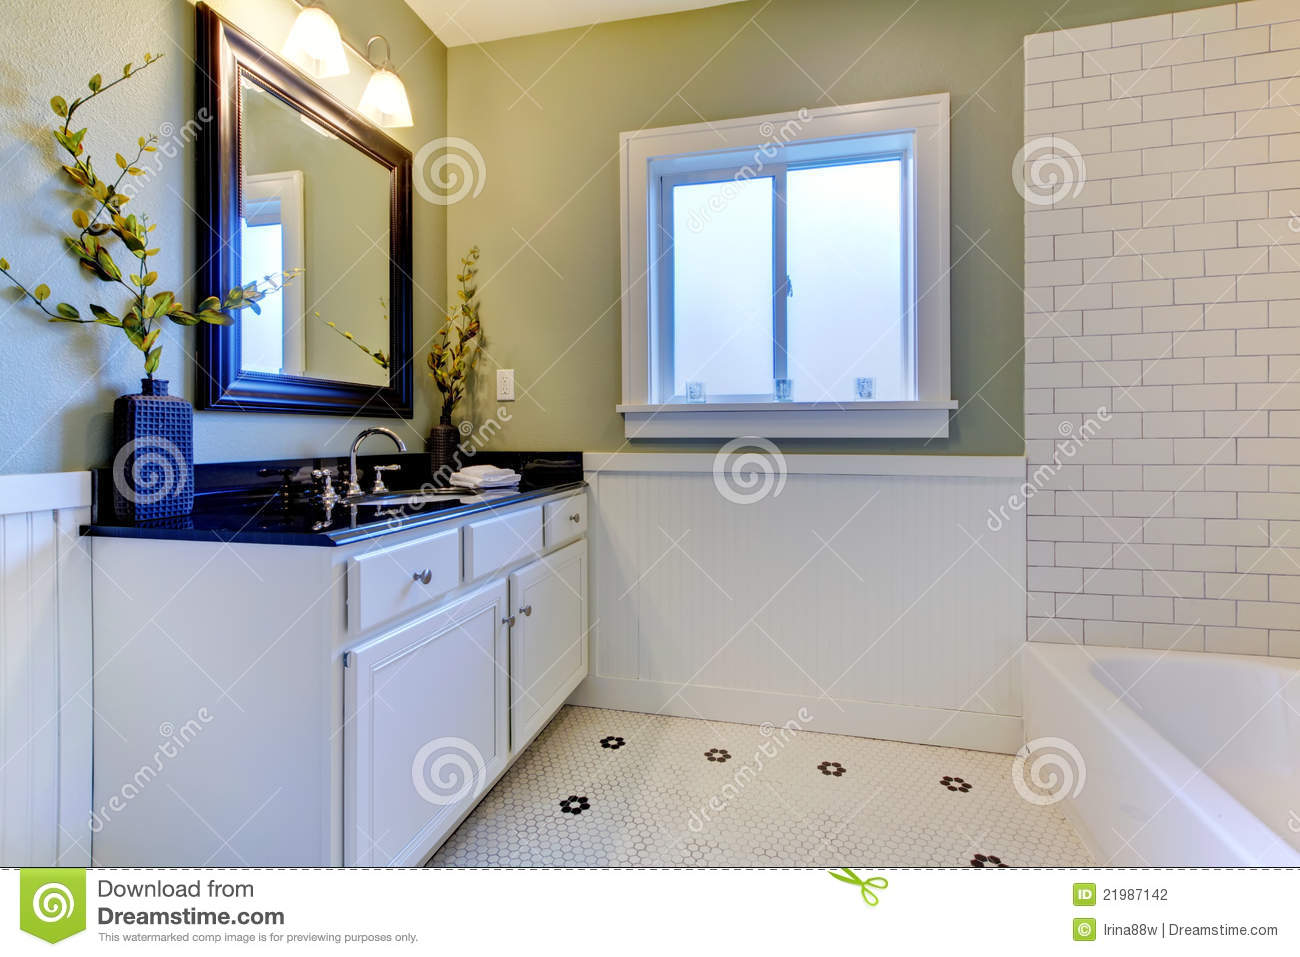 Classic green and white bathroom stock photo image of for Green and white bathroom